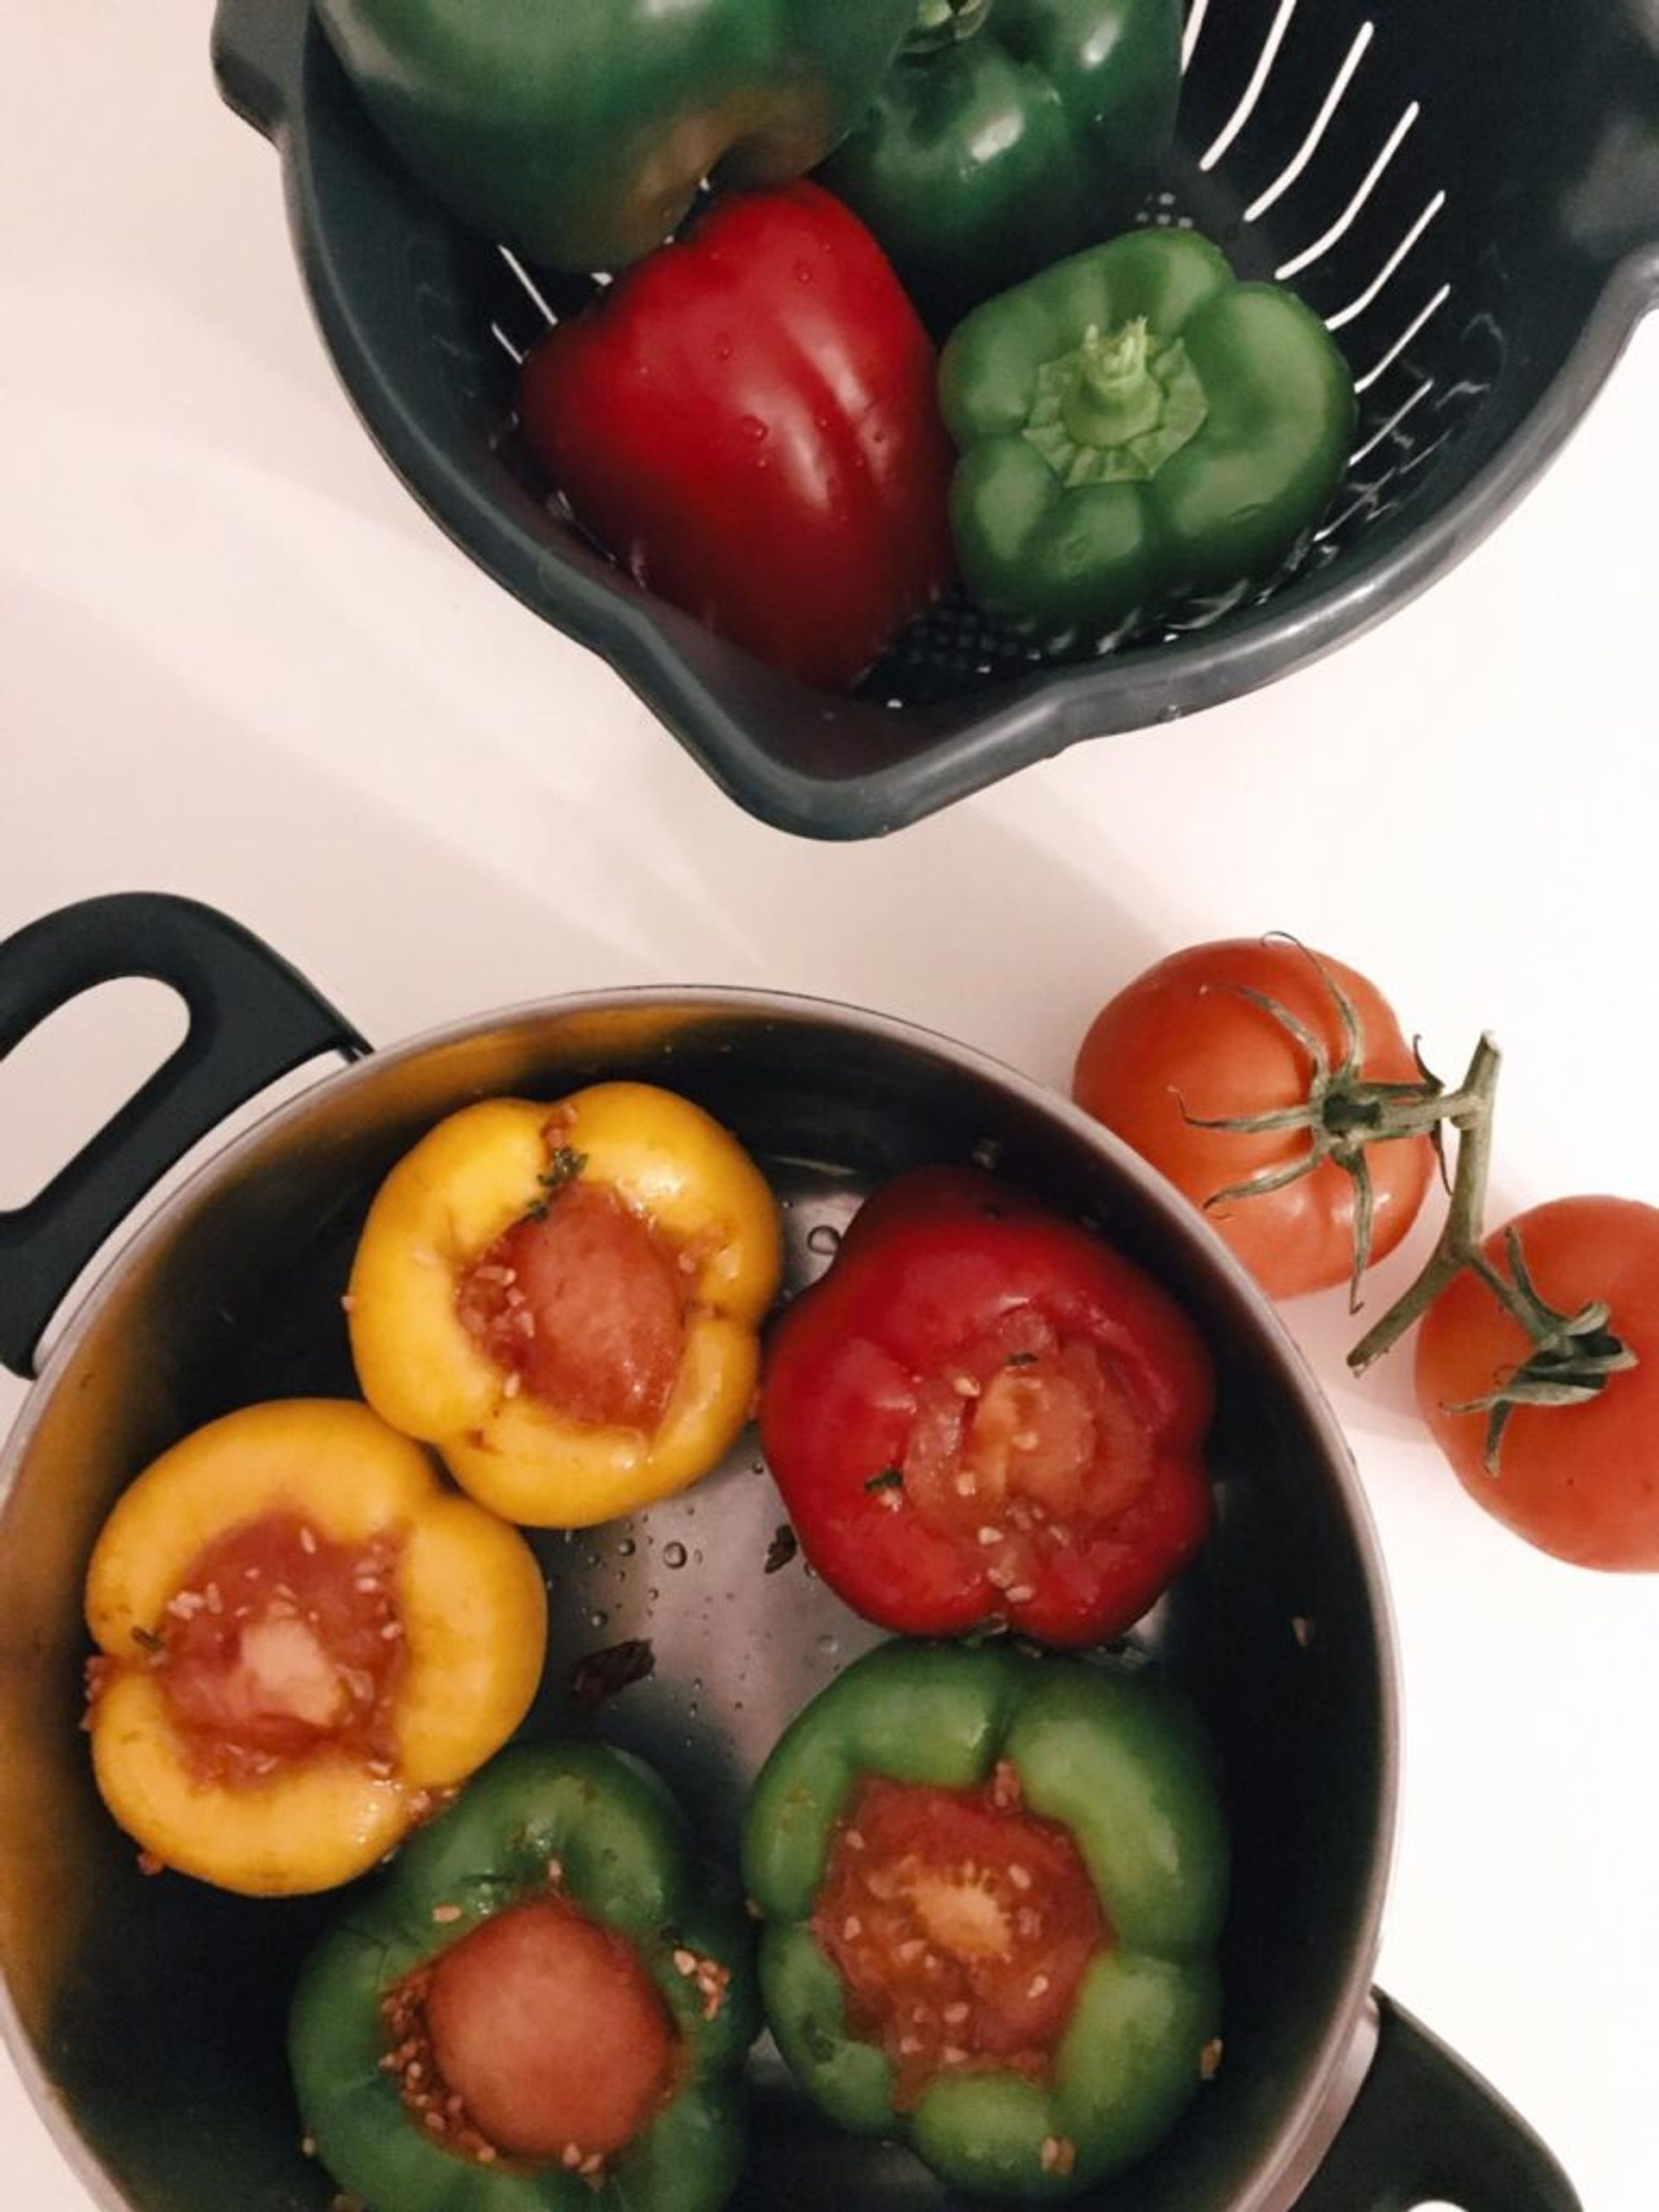 Close-up of peppers and tomatoes cooking in a pan.